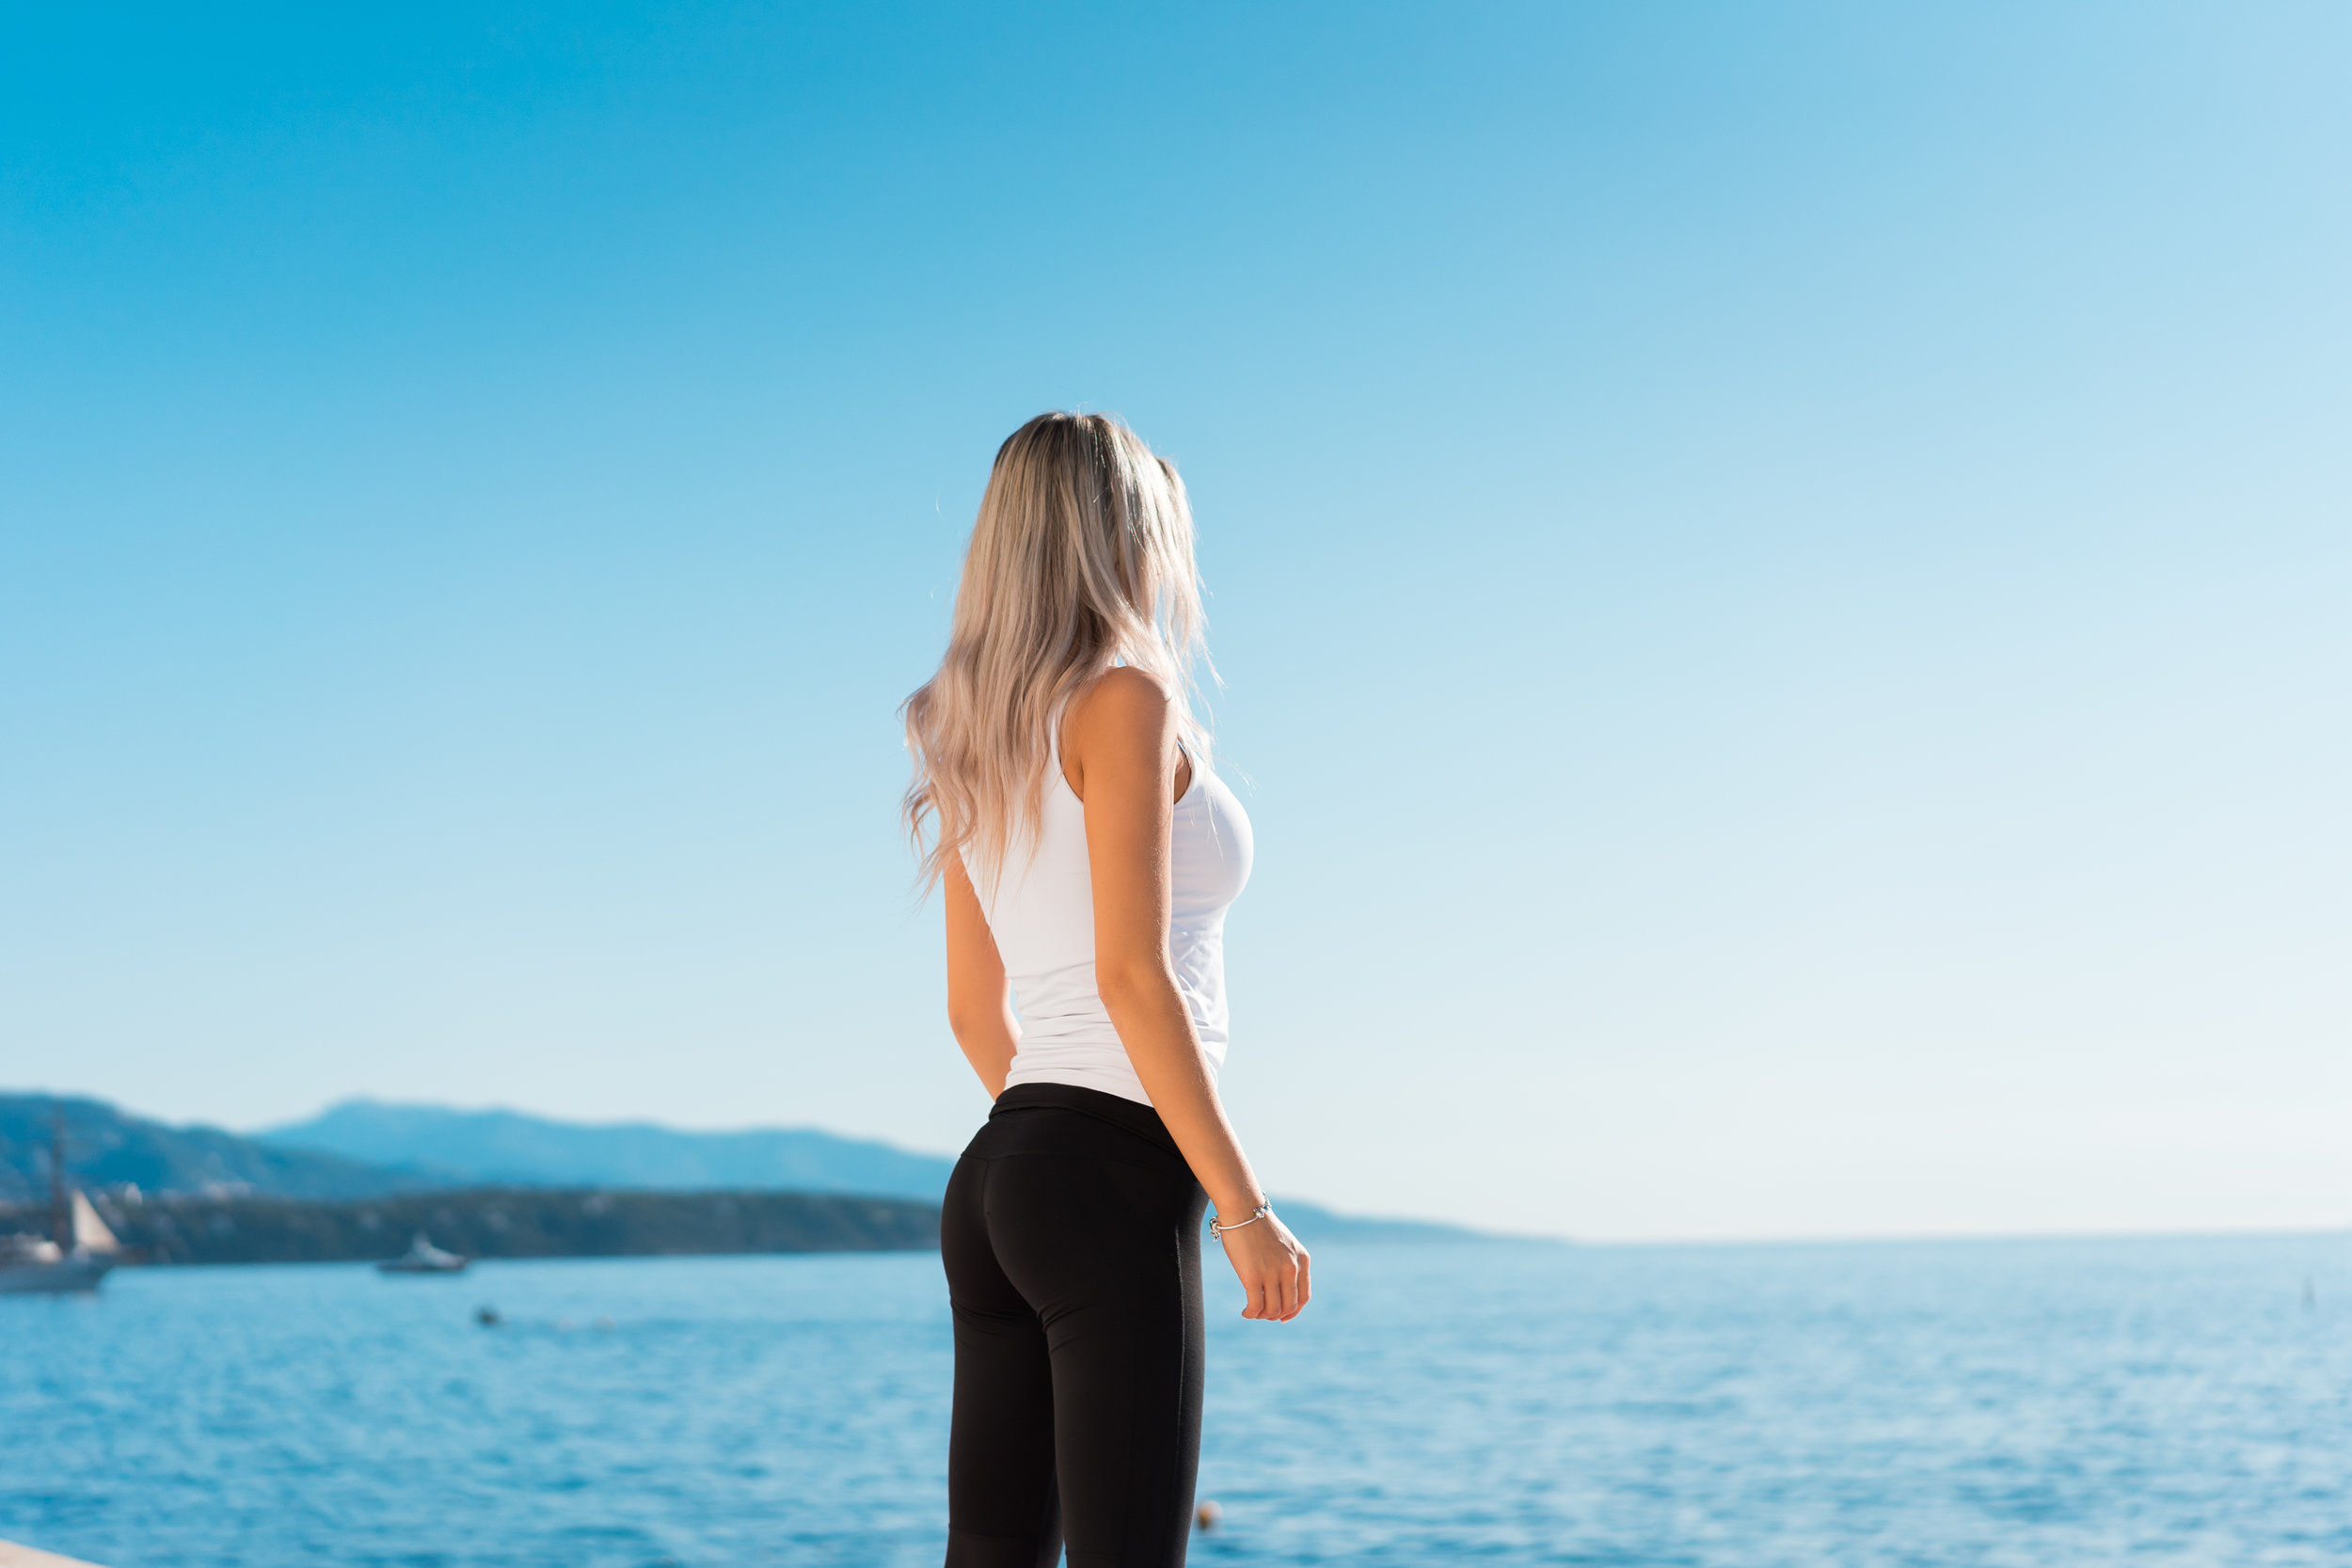 young-fitness-woman-overlooking-the-sea-in-the-morning-picjumbo-com.jpg